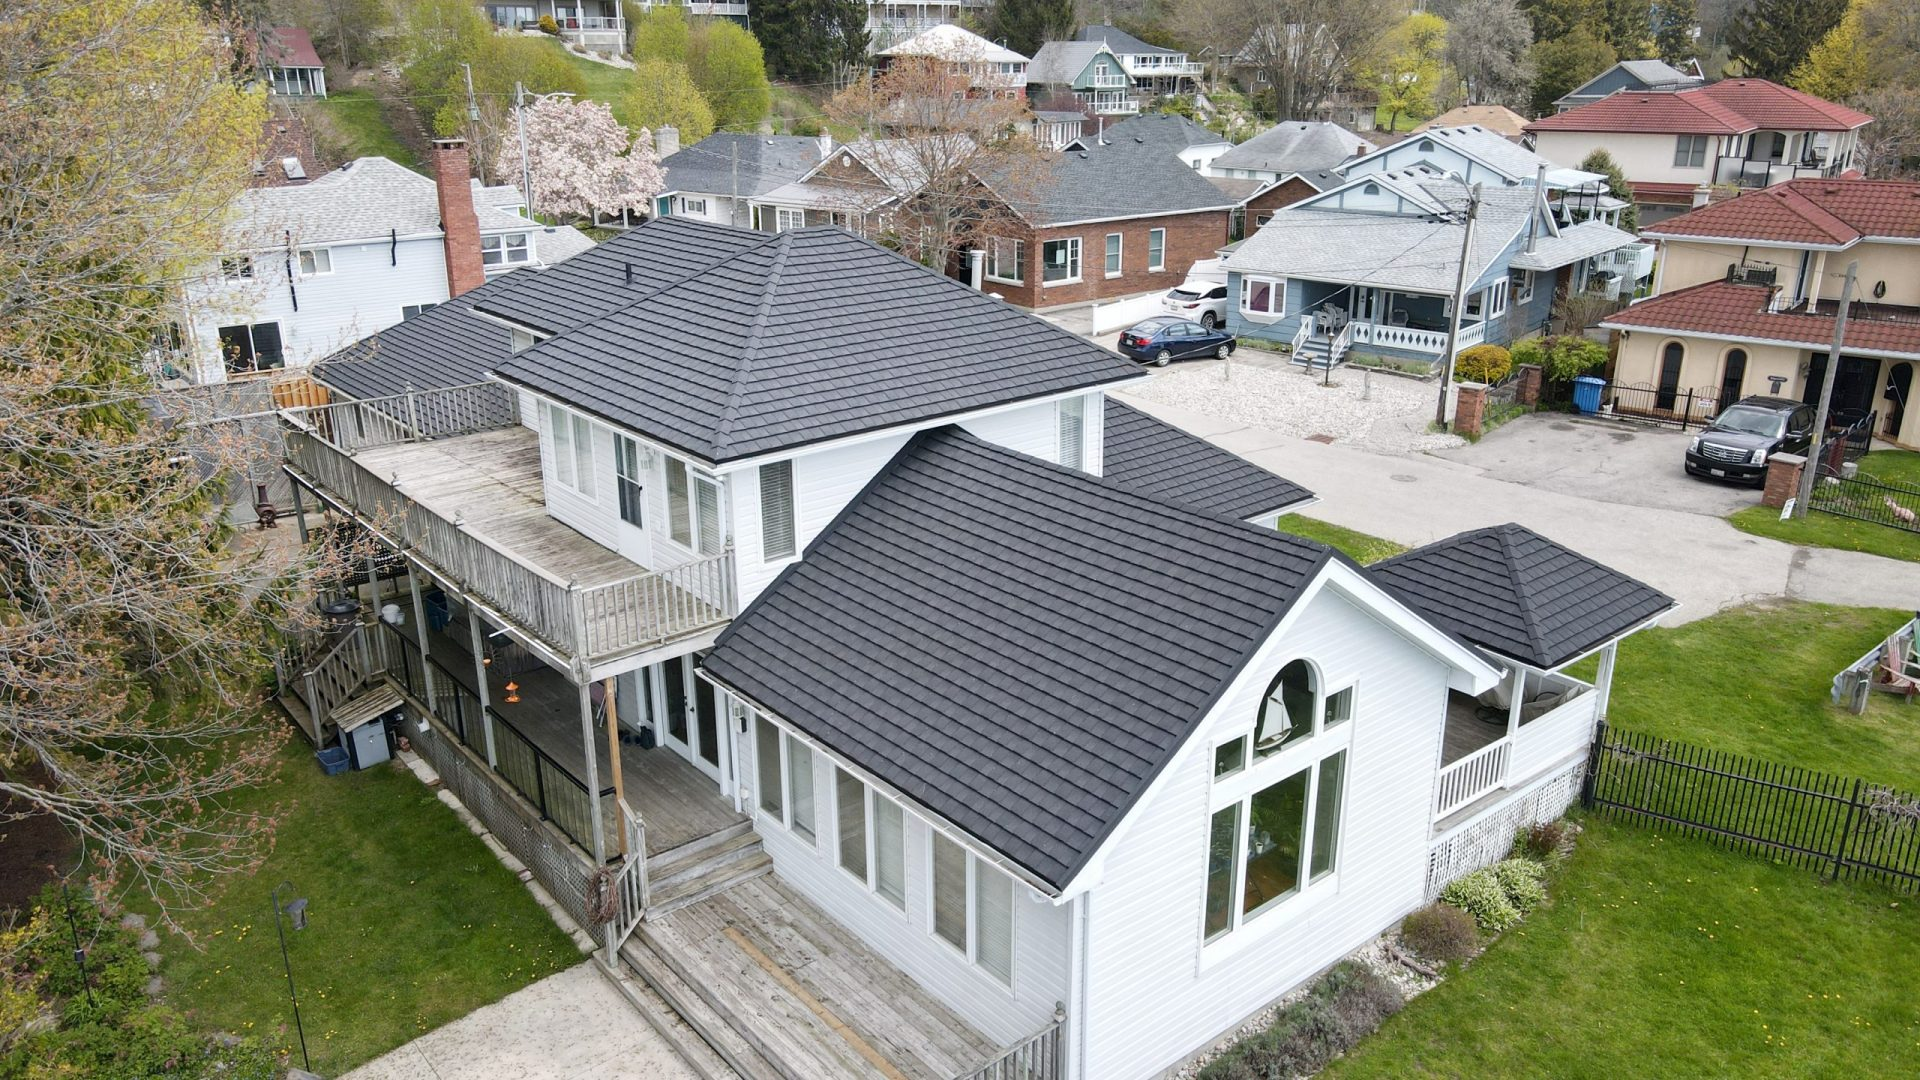 Aerial view of a grey metal roof on a white cottage with trees and cottages in the background. Cottage located in Port Stanley, Ontario with Tilcor CF Shingle metal roof by metalroofoutlet.com